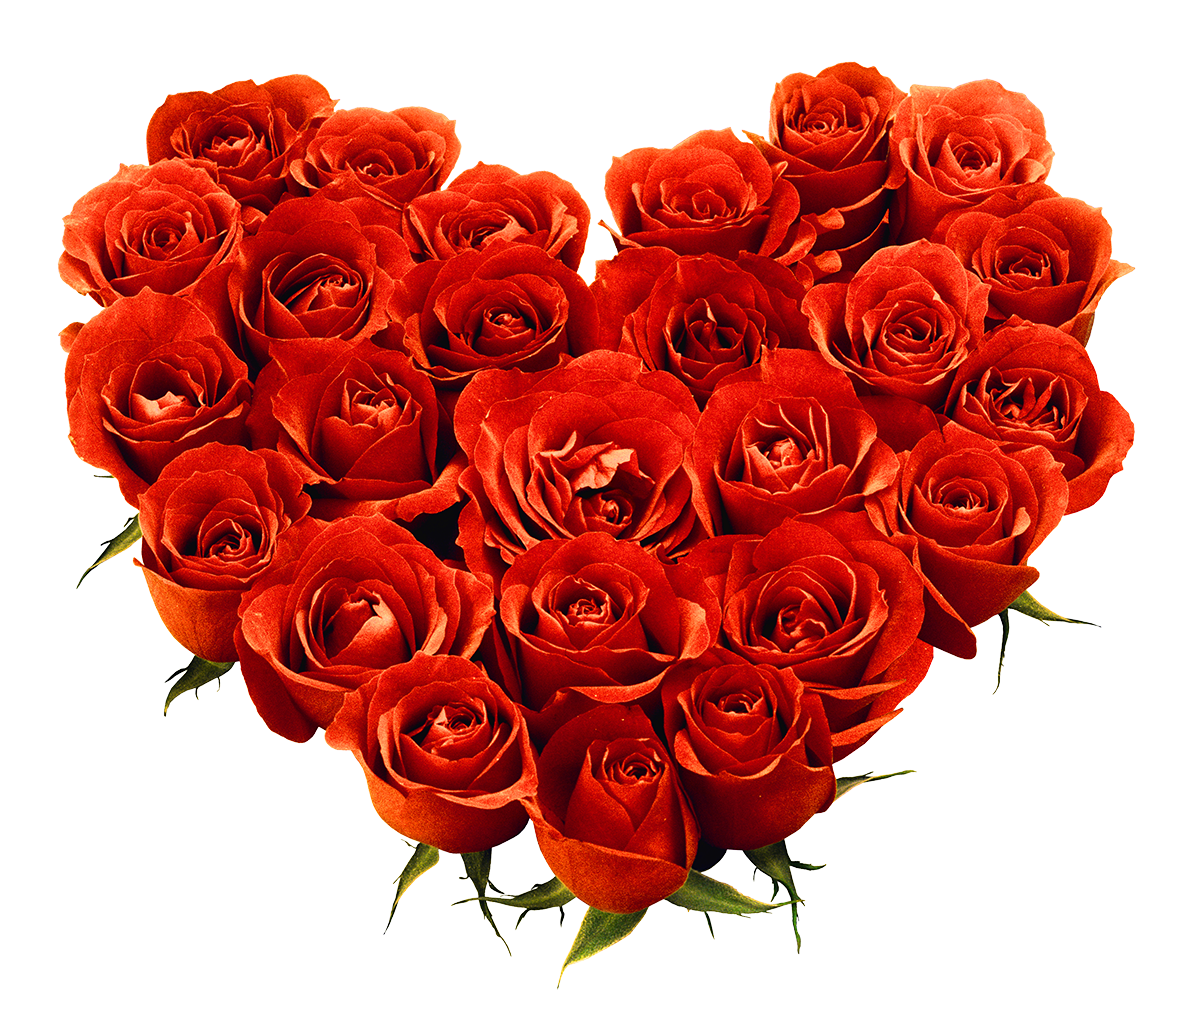 Rose flowers png. Love flower